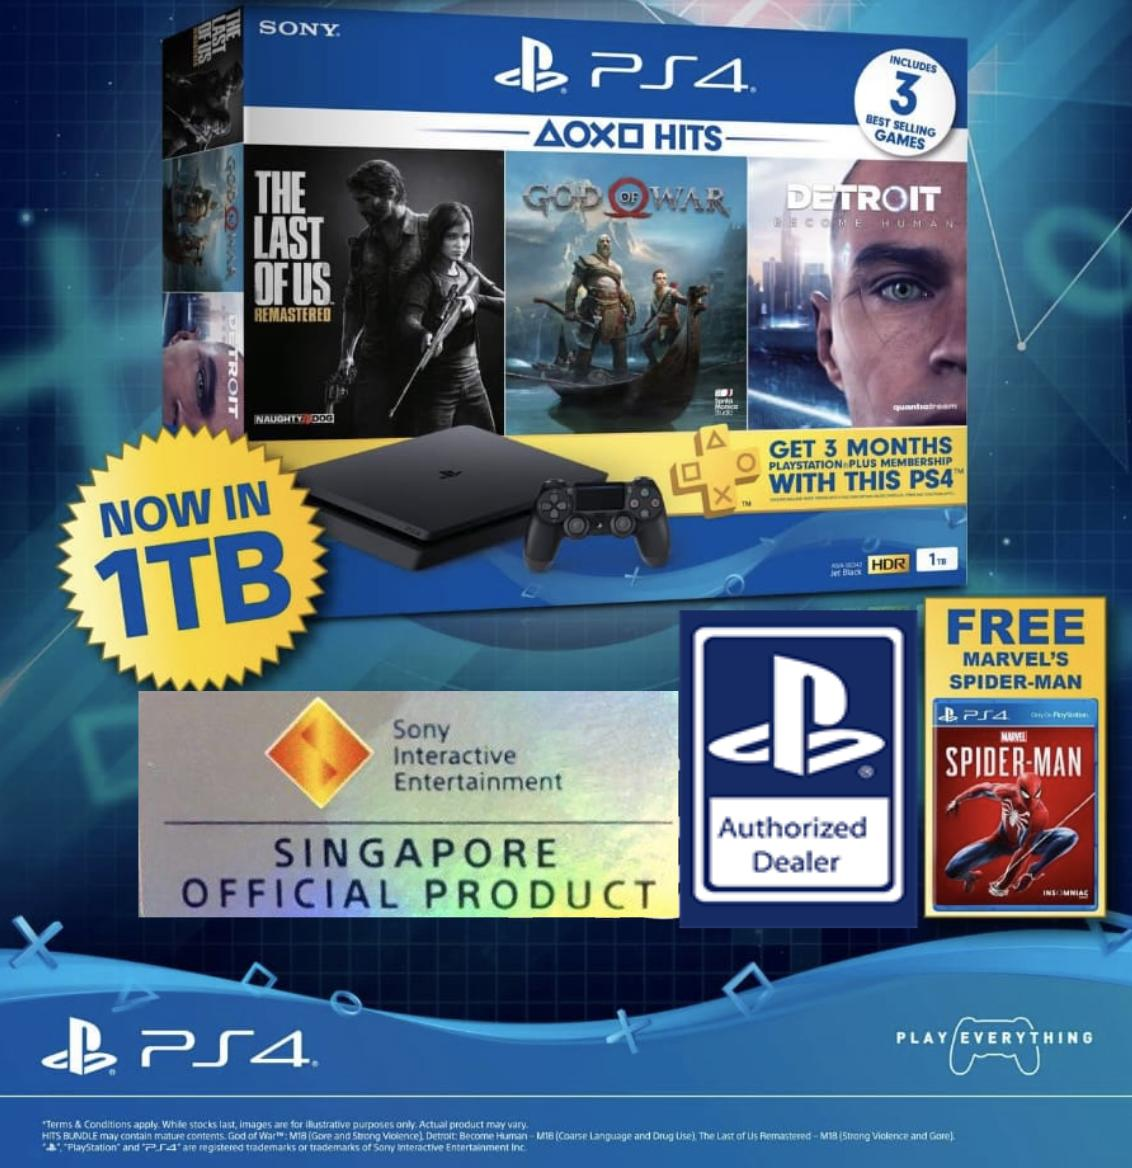 Ps4 1tb Slim Hits Bundle With Free Spider-Man Game Disc By Gwc (gadgets Wholesale Centre).